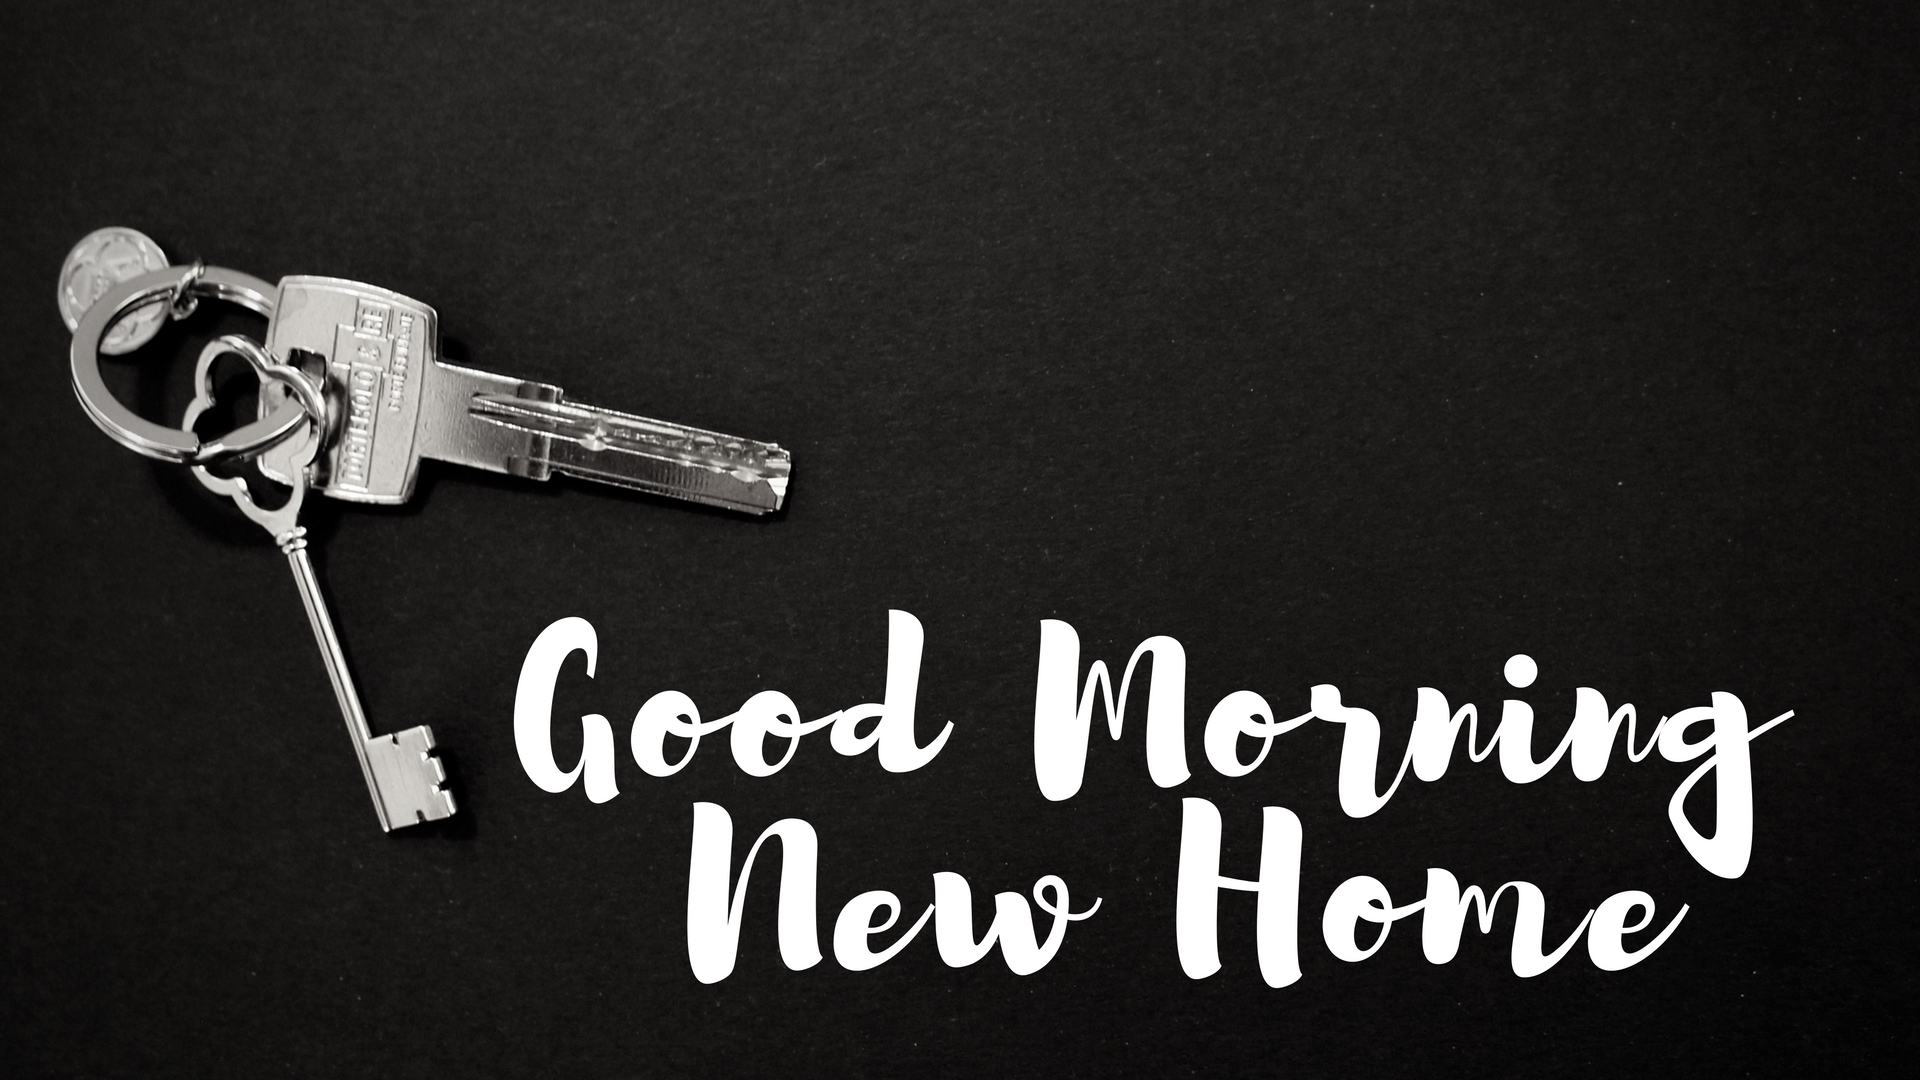 Good Morning New Home